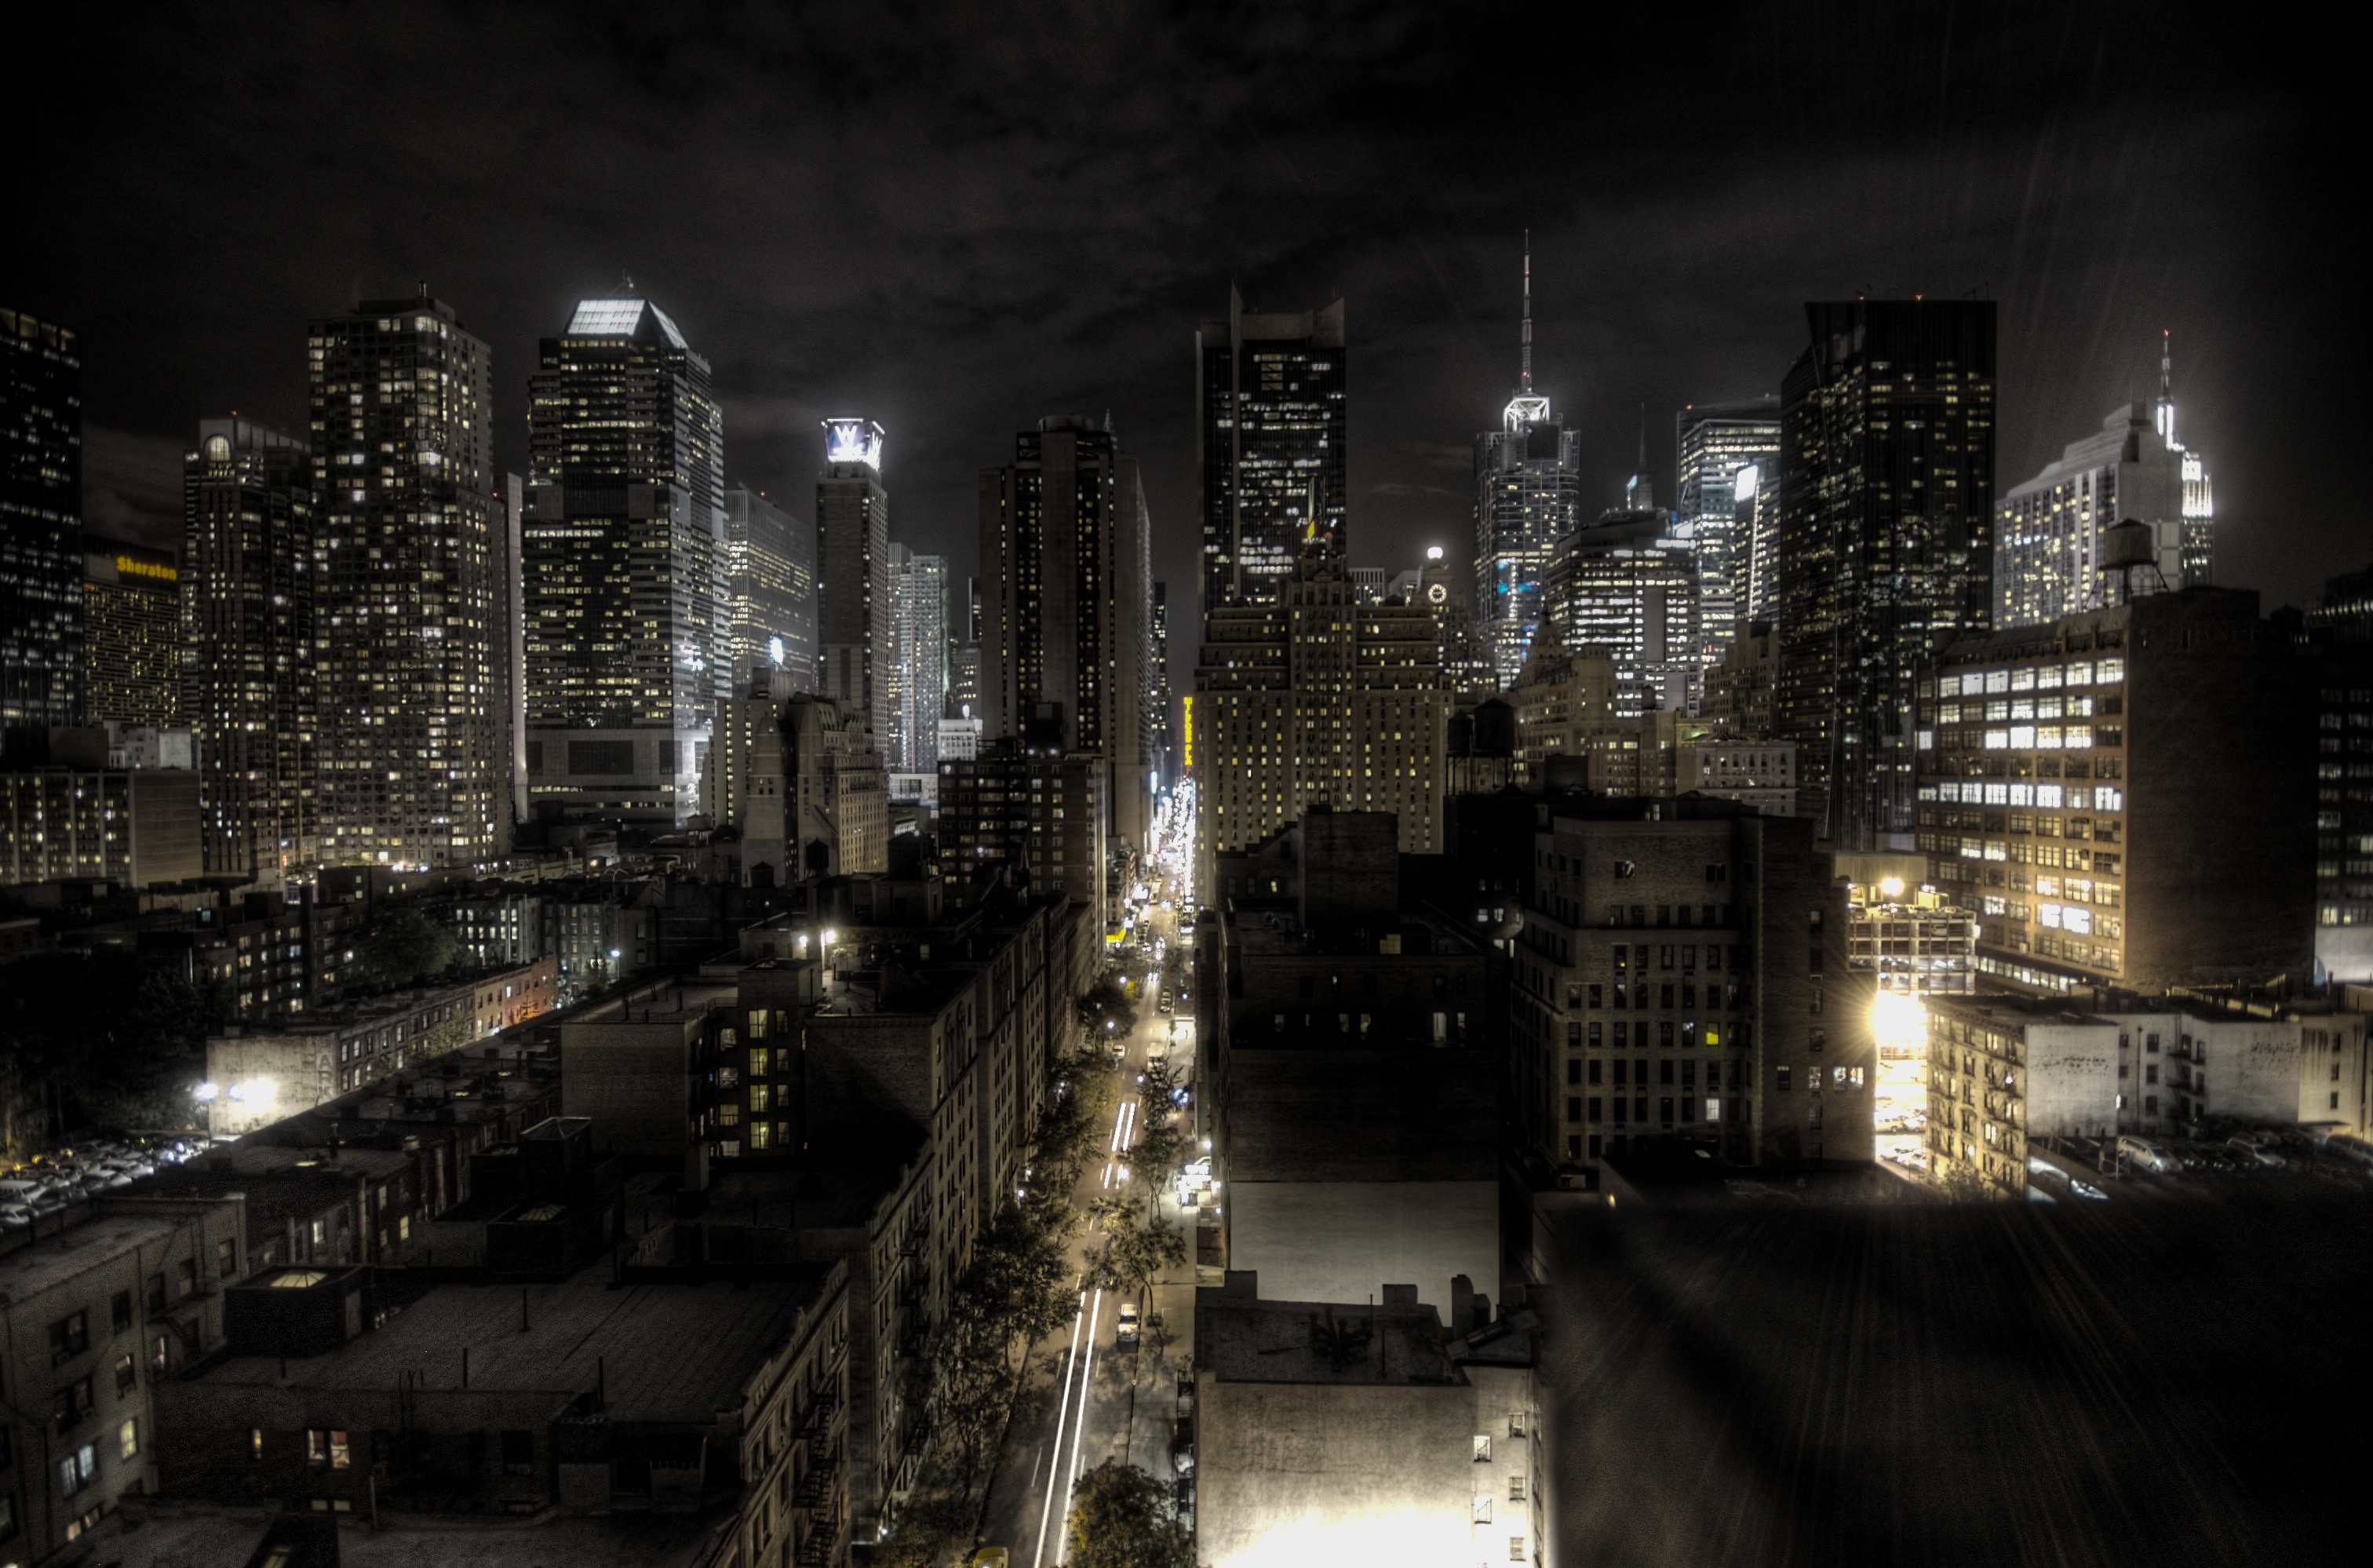 Beschreibung new york city at night hdr